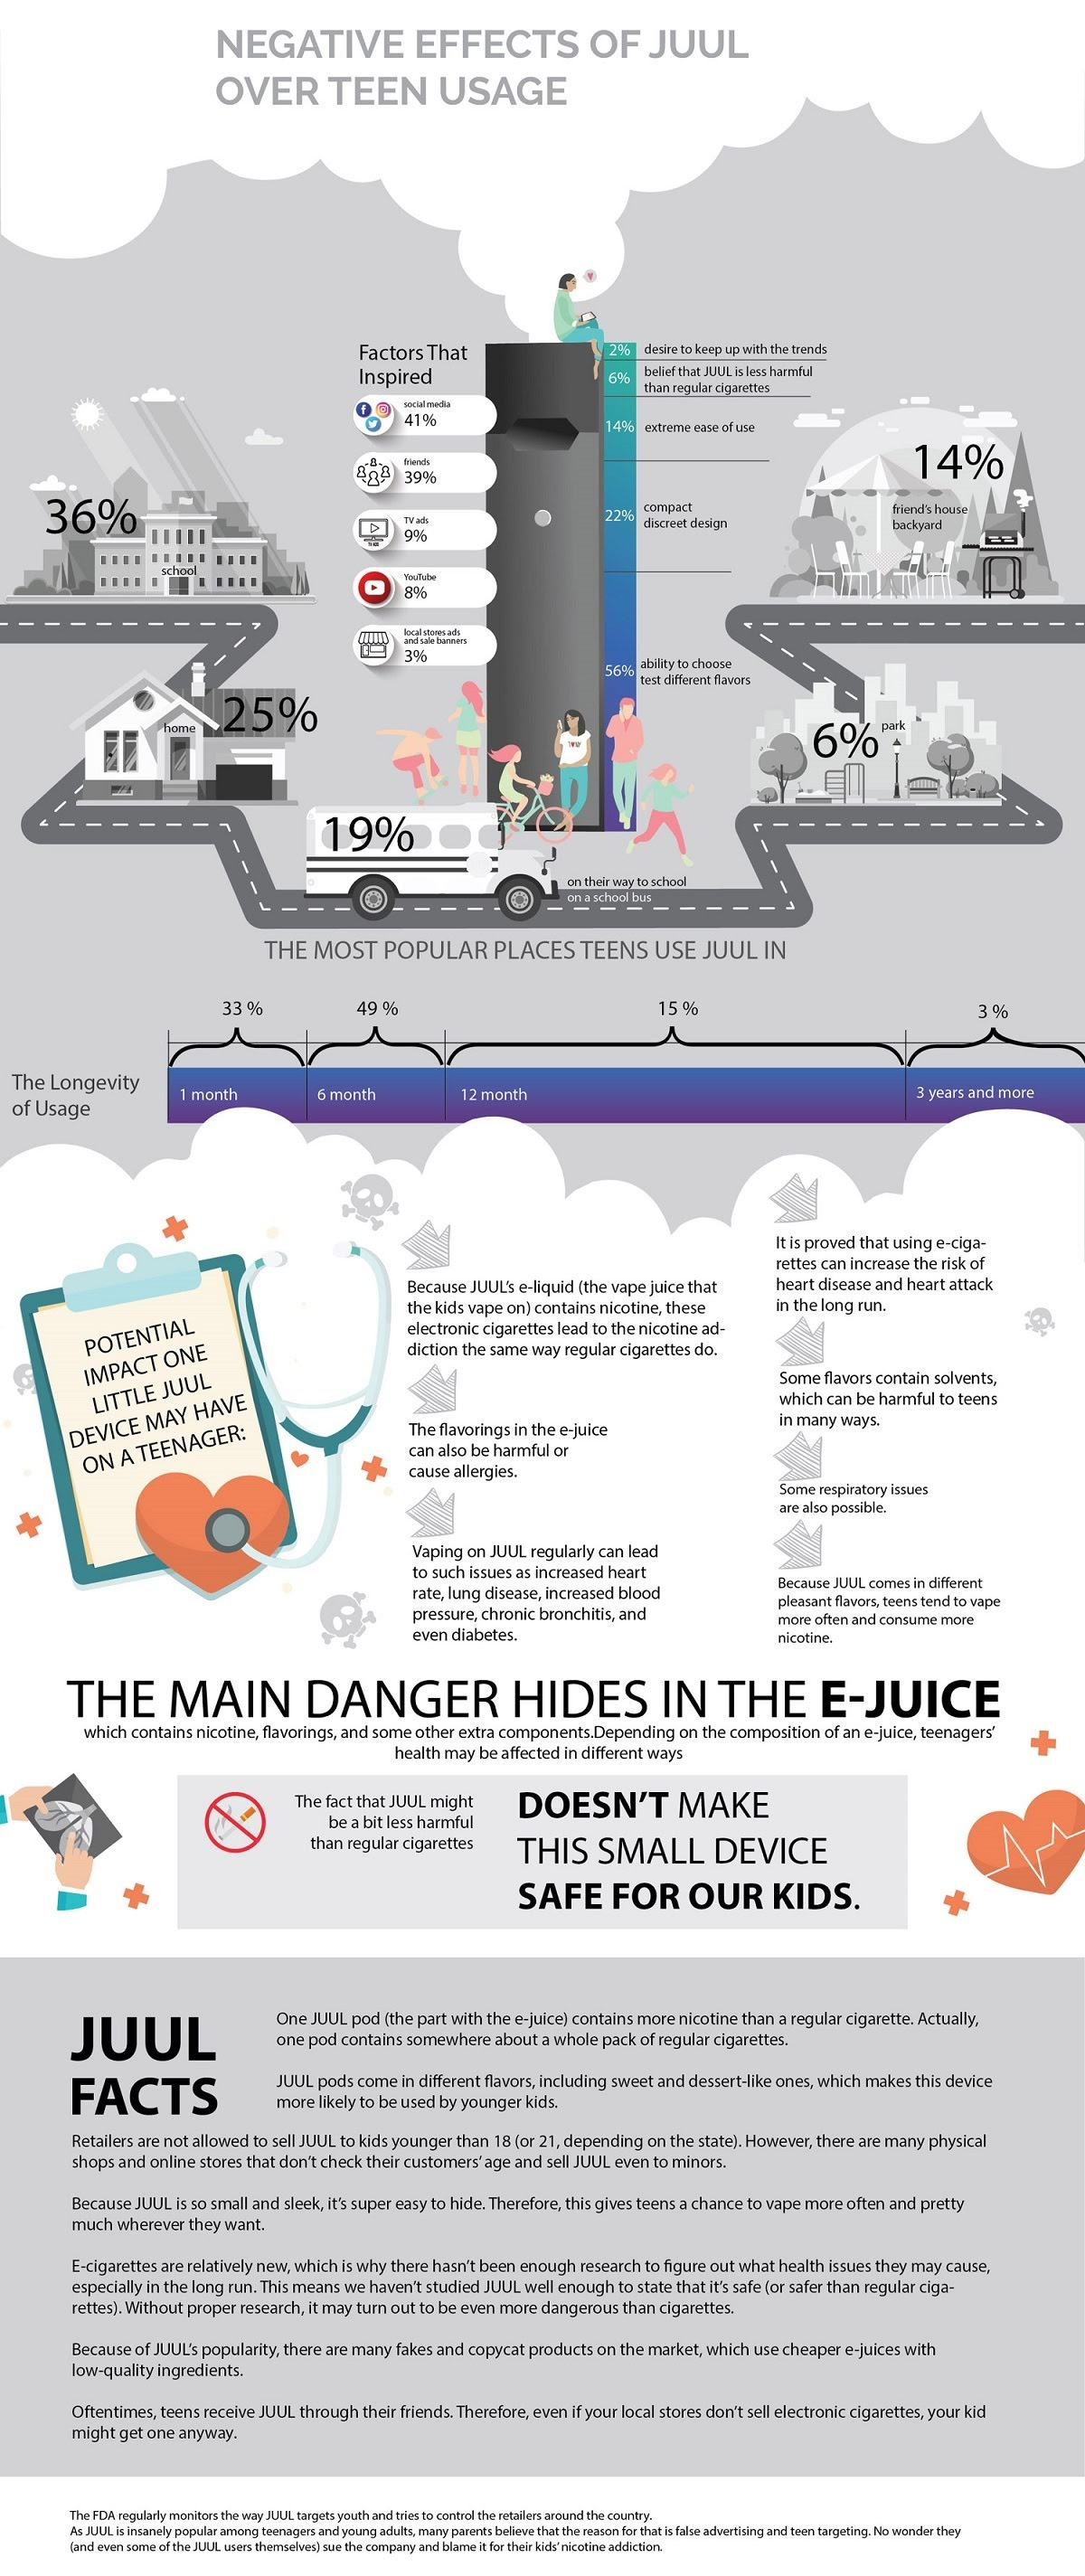 Negative Effects of JUUL Over Teen Usage #infographic